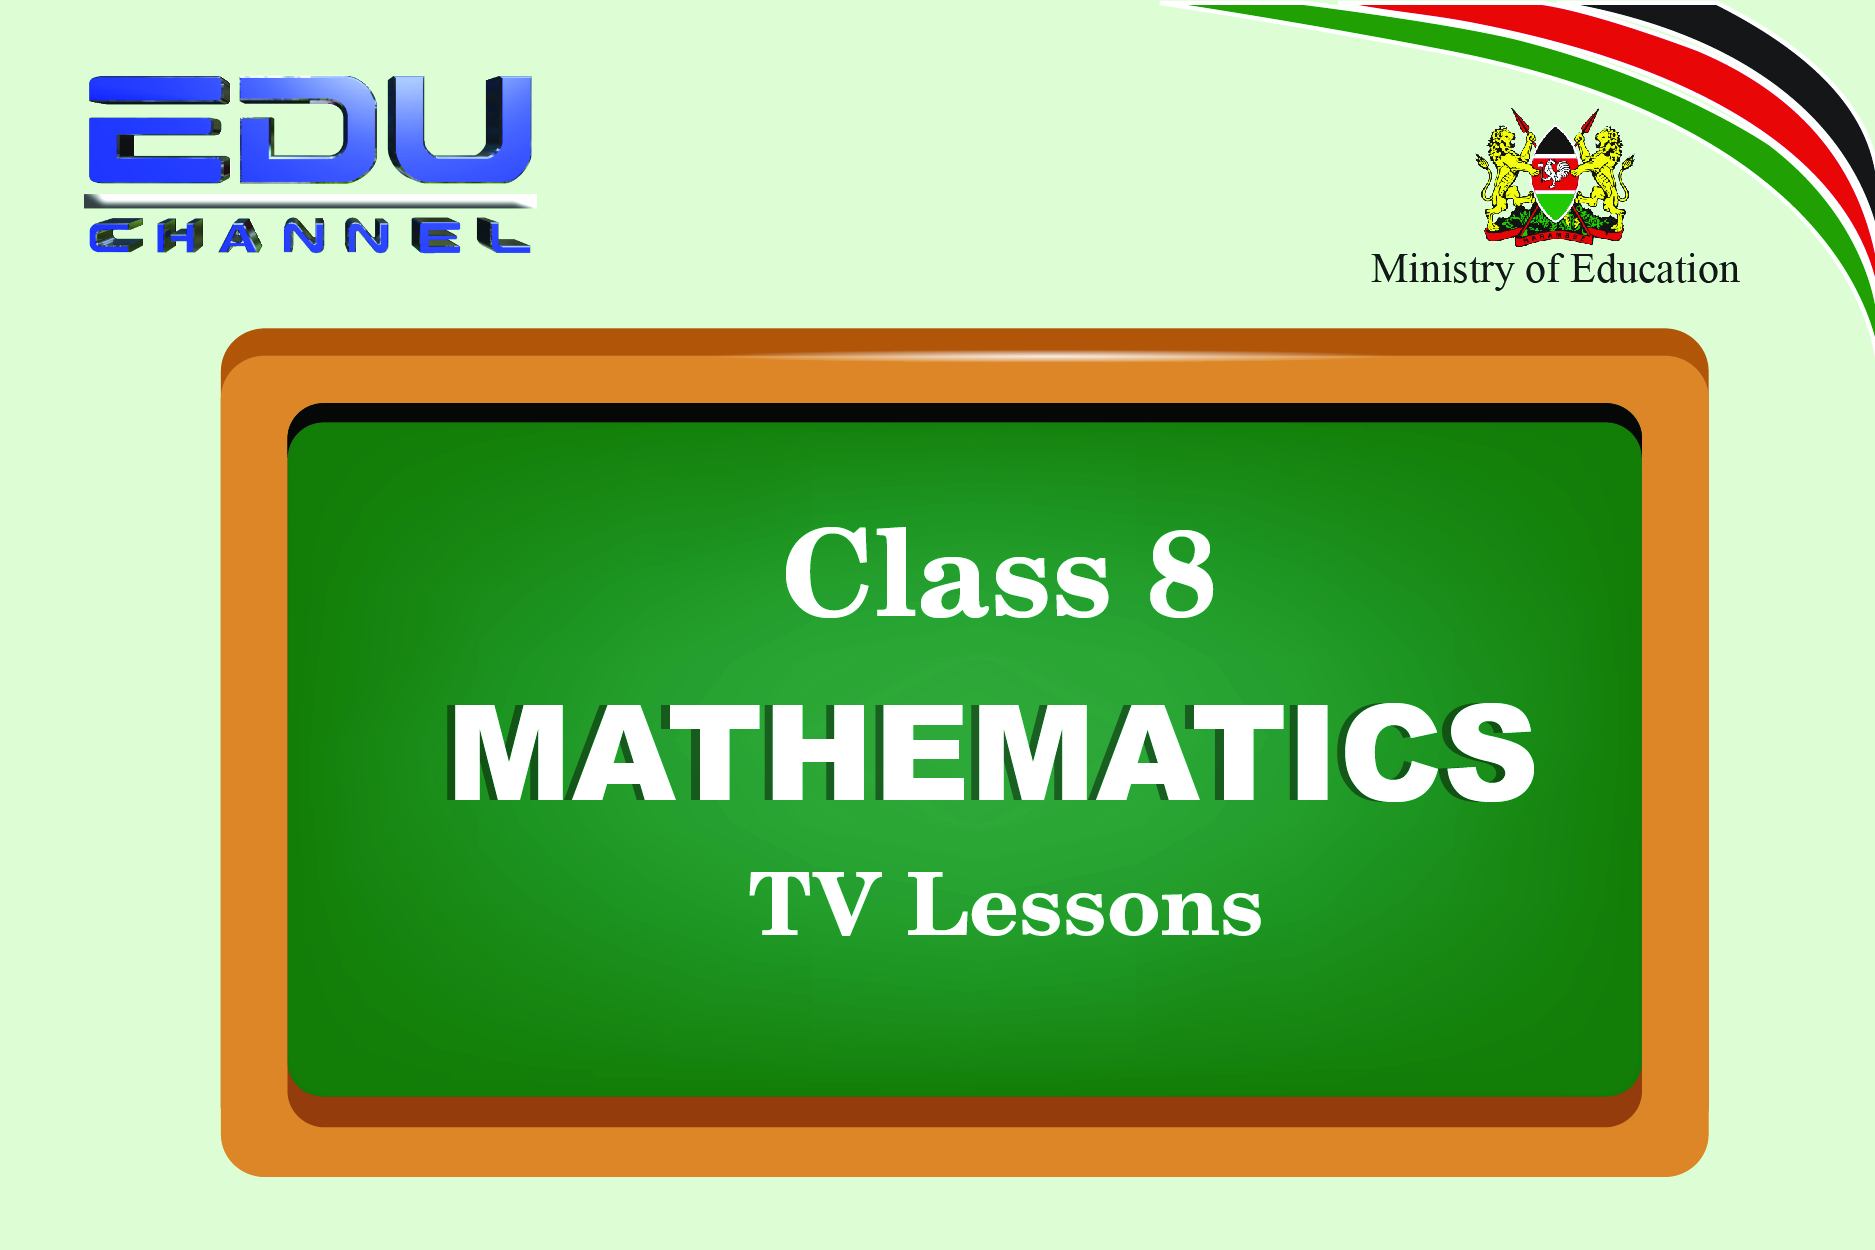 Standard 8 Mathematics Lesson 1 : Numbers Squares and Square roots